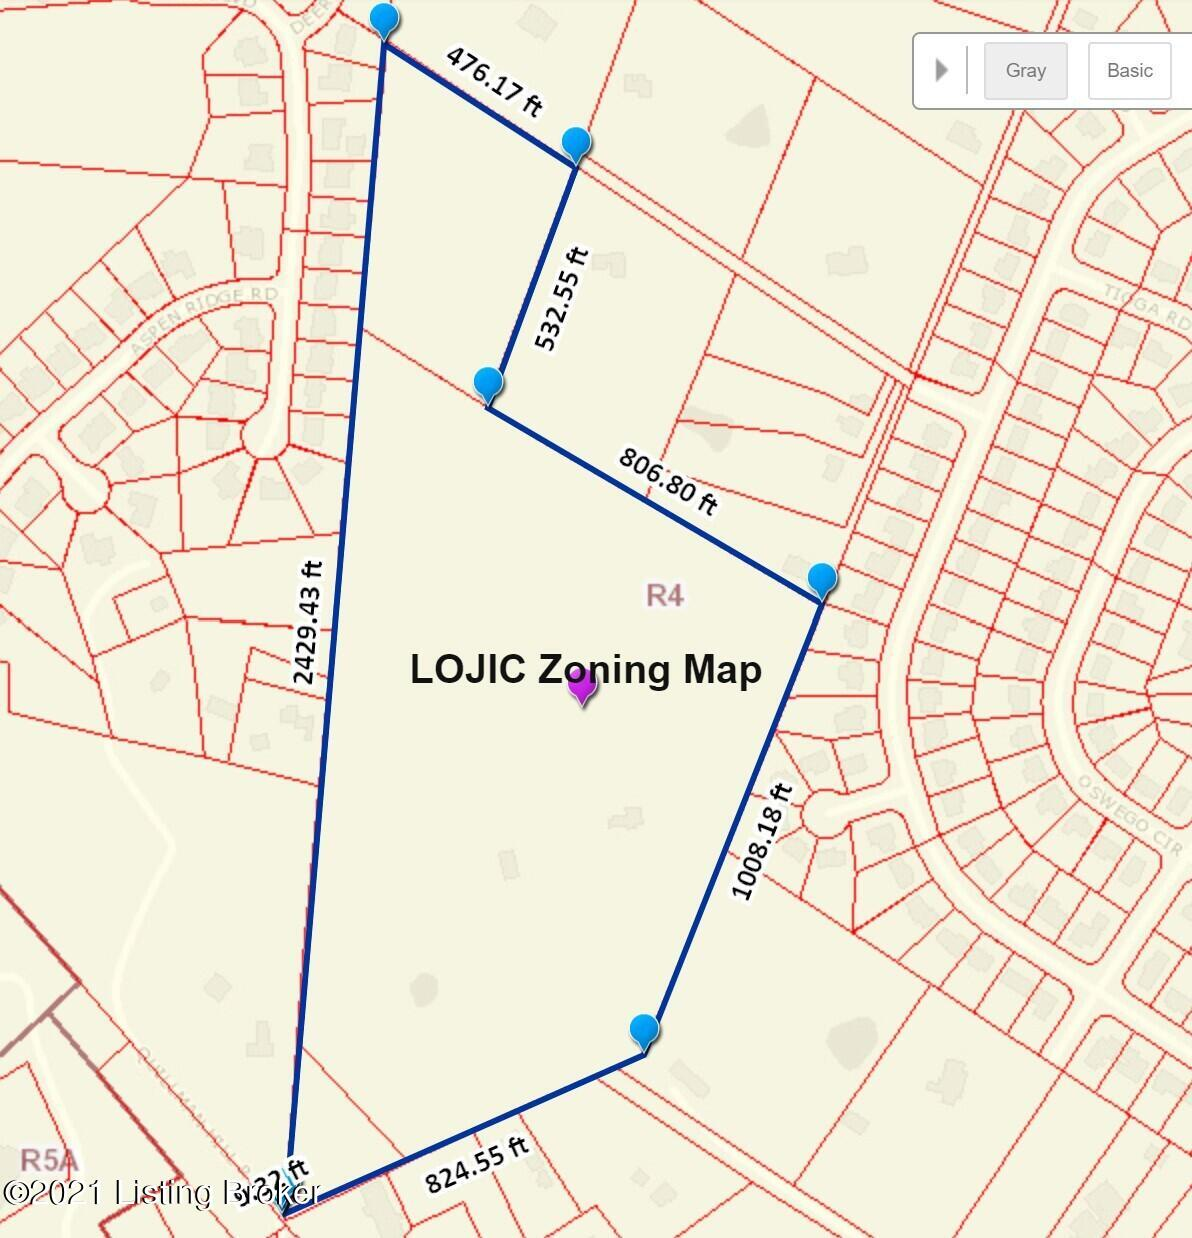 LOJIC Zoning Map 7600 St Andrews Ch 2105